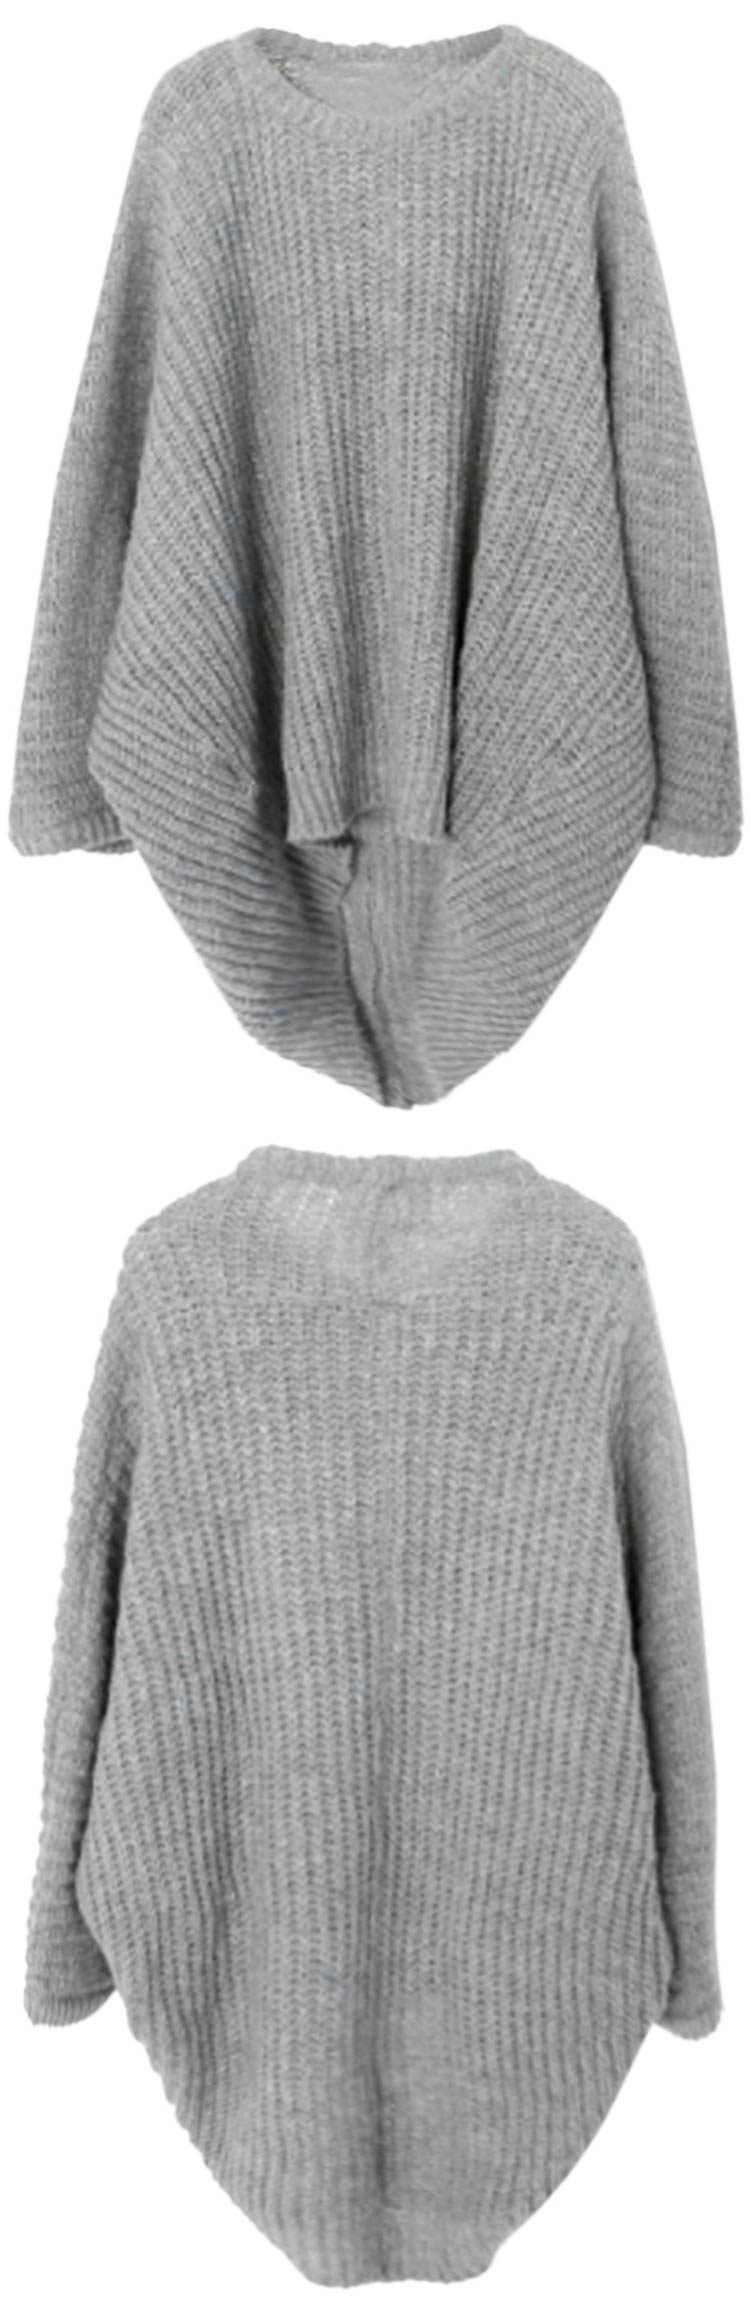 Must-have wrap style to have with $24.99 Only+easy return+free shipping! This high low sweater is just made for this coming day! Go get it at Cupshe.com